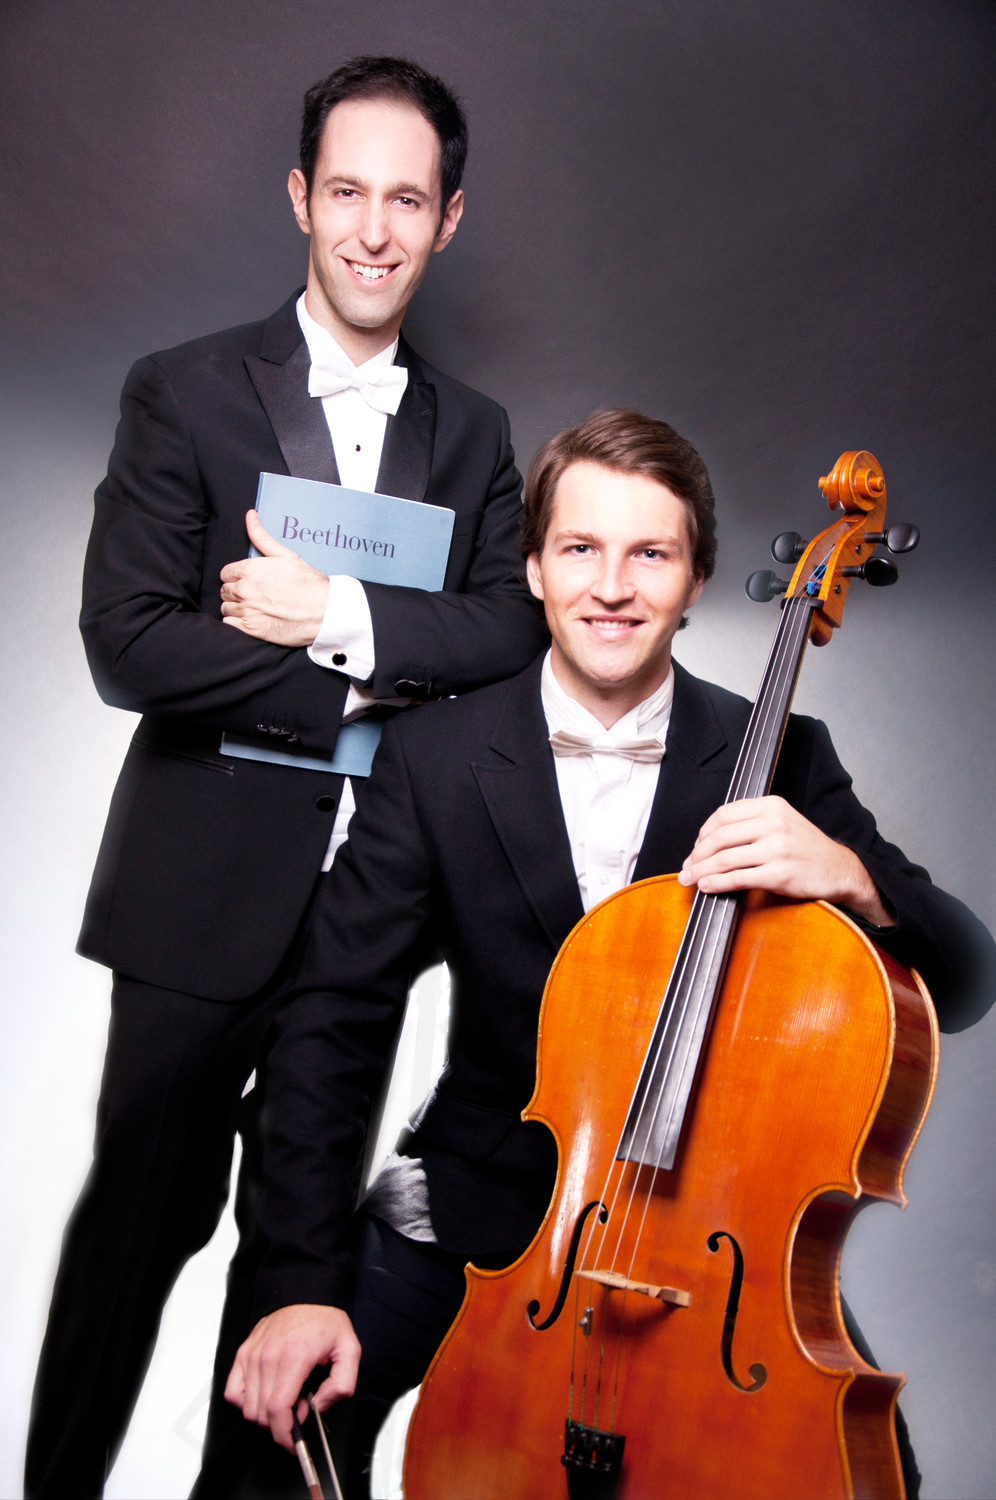 The Daurov/Myer Duo performs in the Arts in the Village Concert Series on Saturday, March 24.